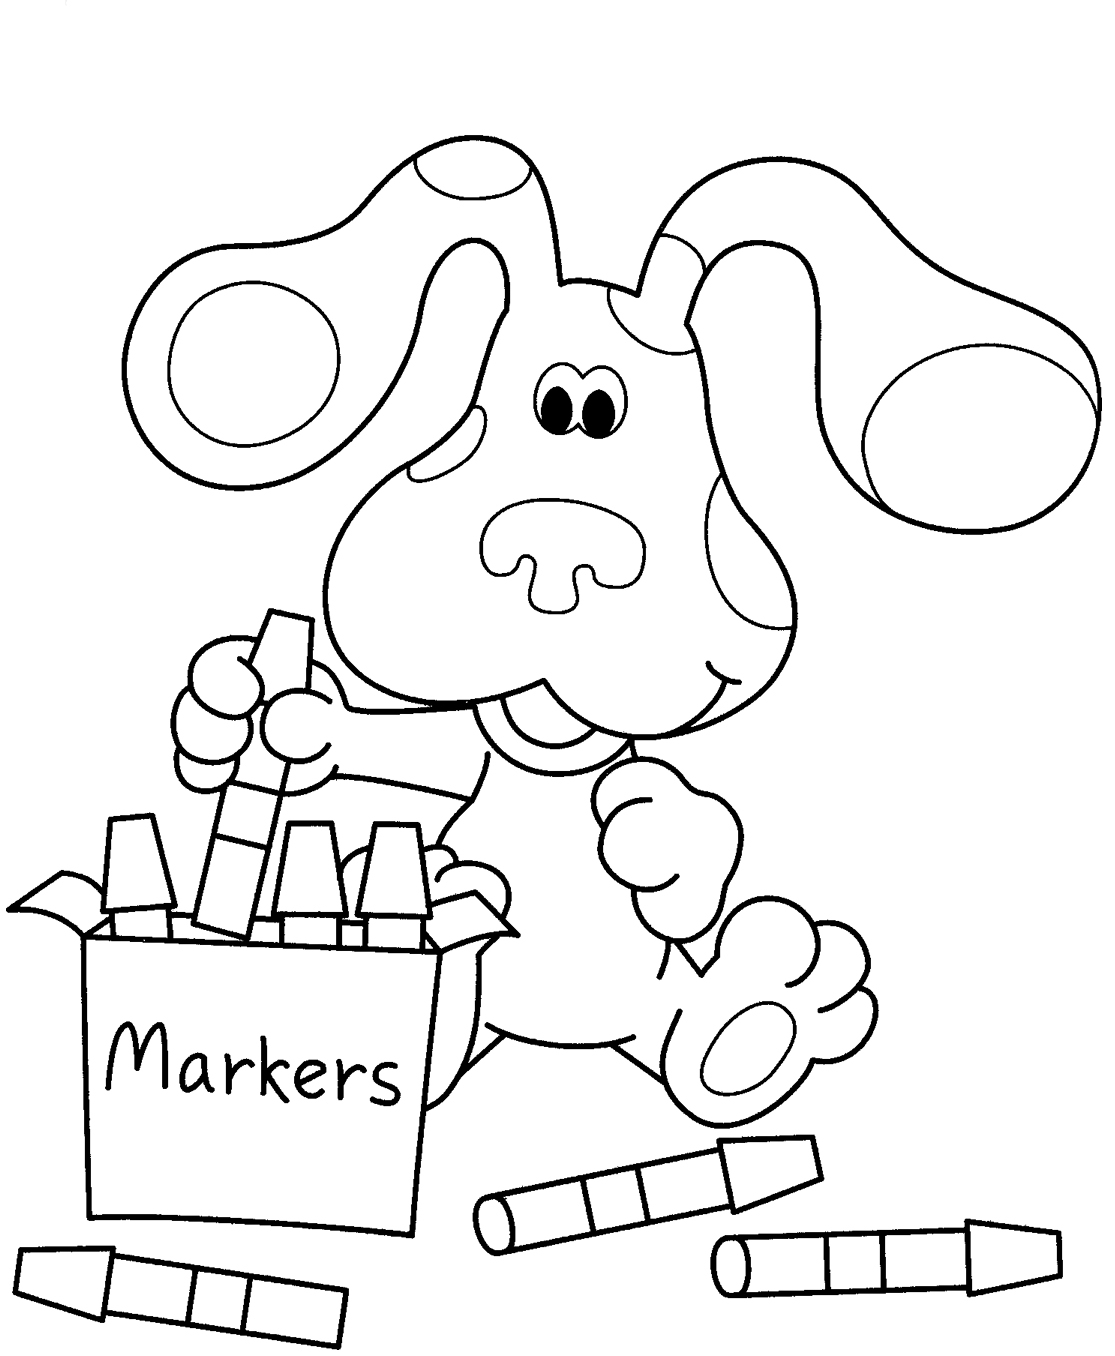 Nick Jr Coloring Pages 14 Coloring